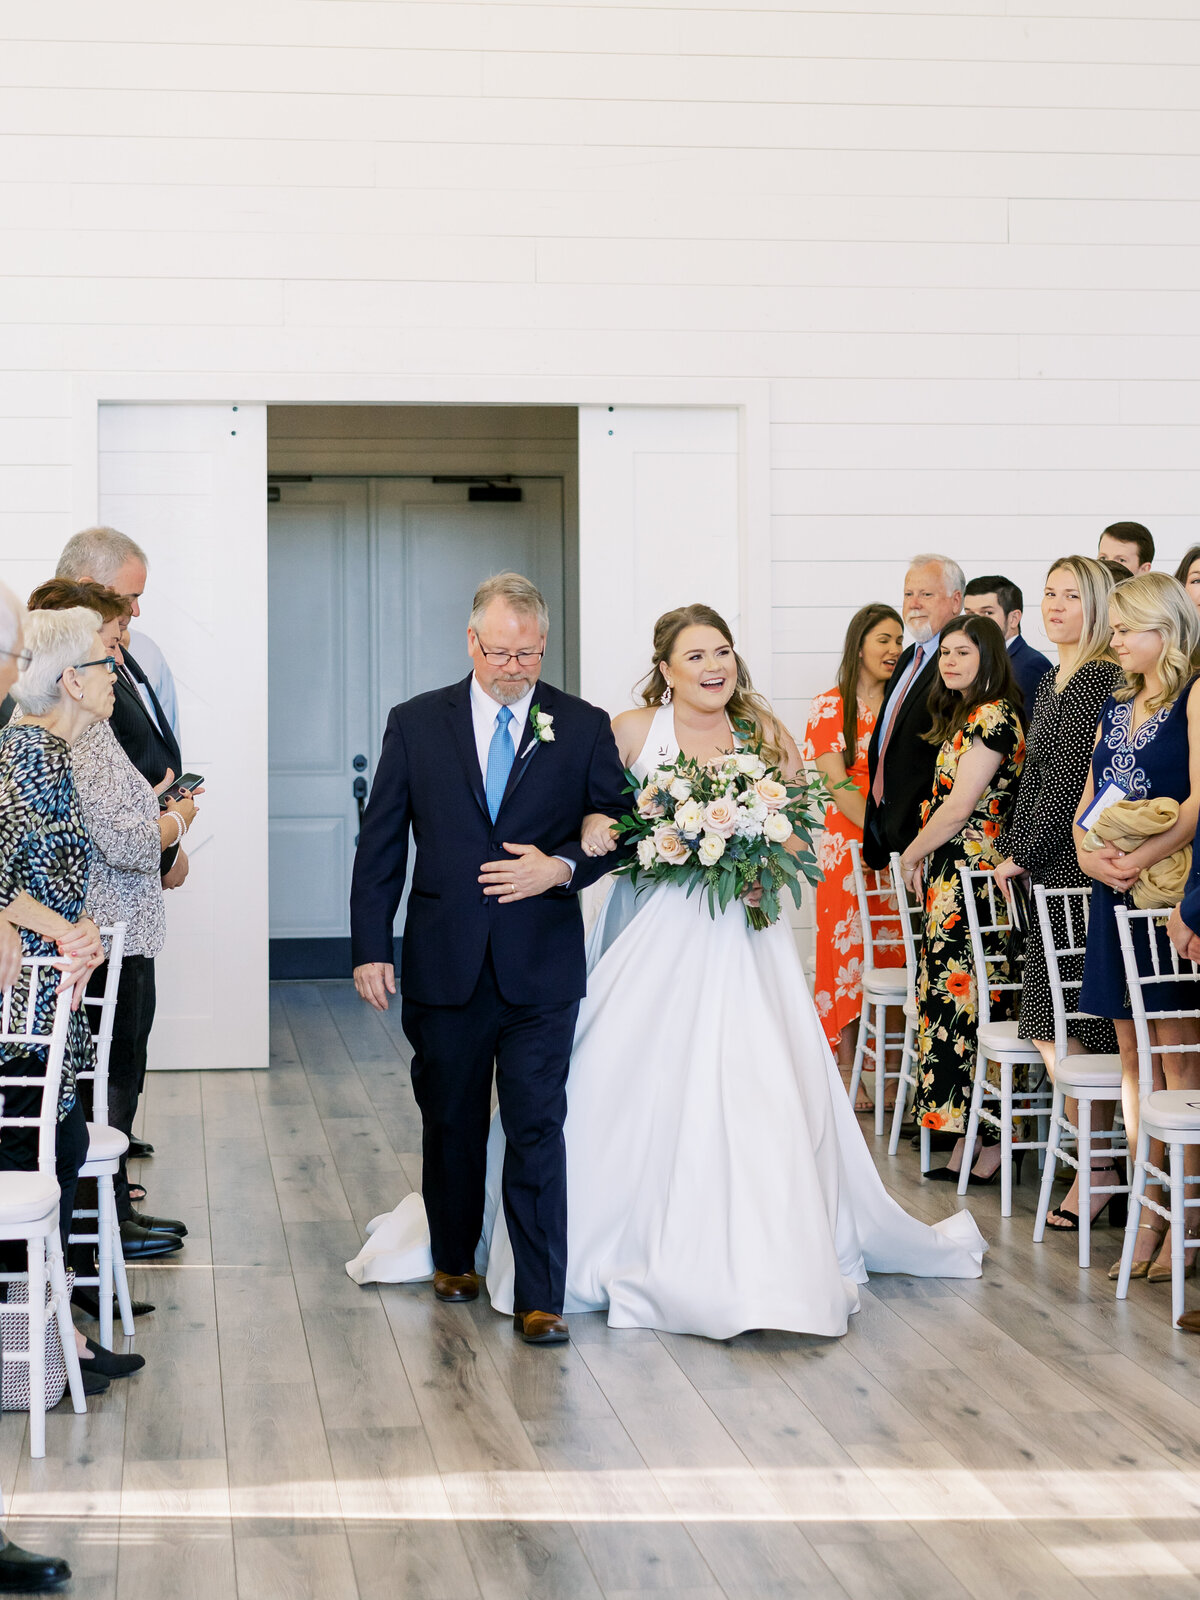 the-farmhouse-wedding-houston-texas-wedding-photographer-mackenzie-reiter-photography-56